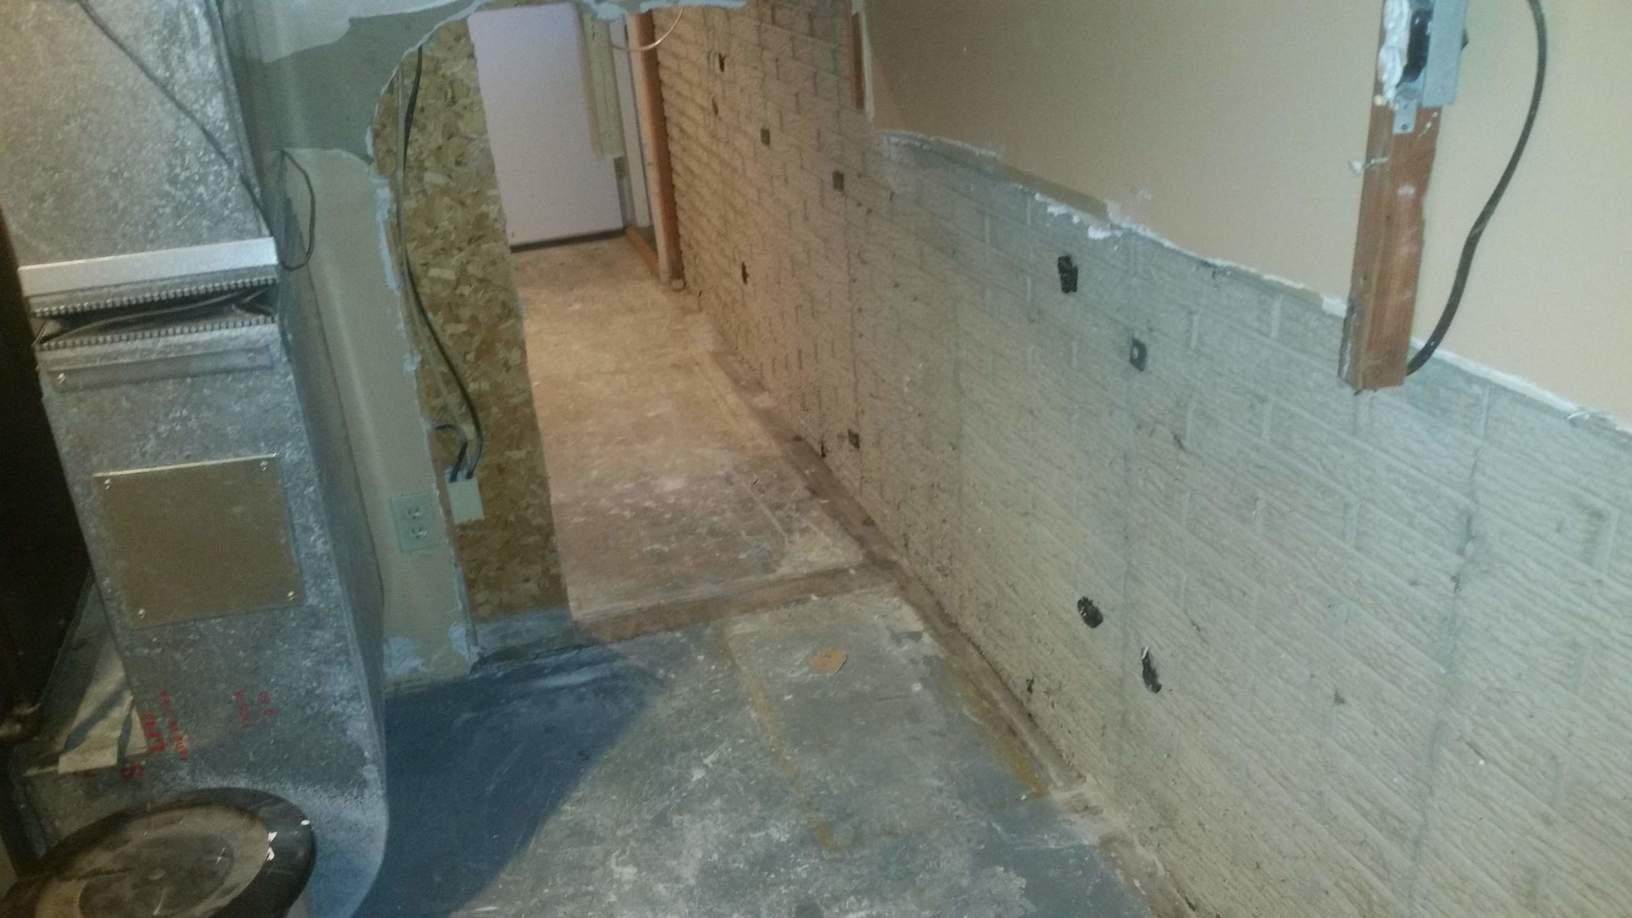 The basement before the system is installed.